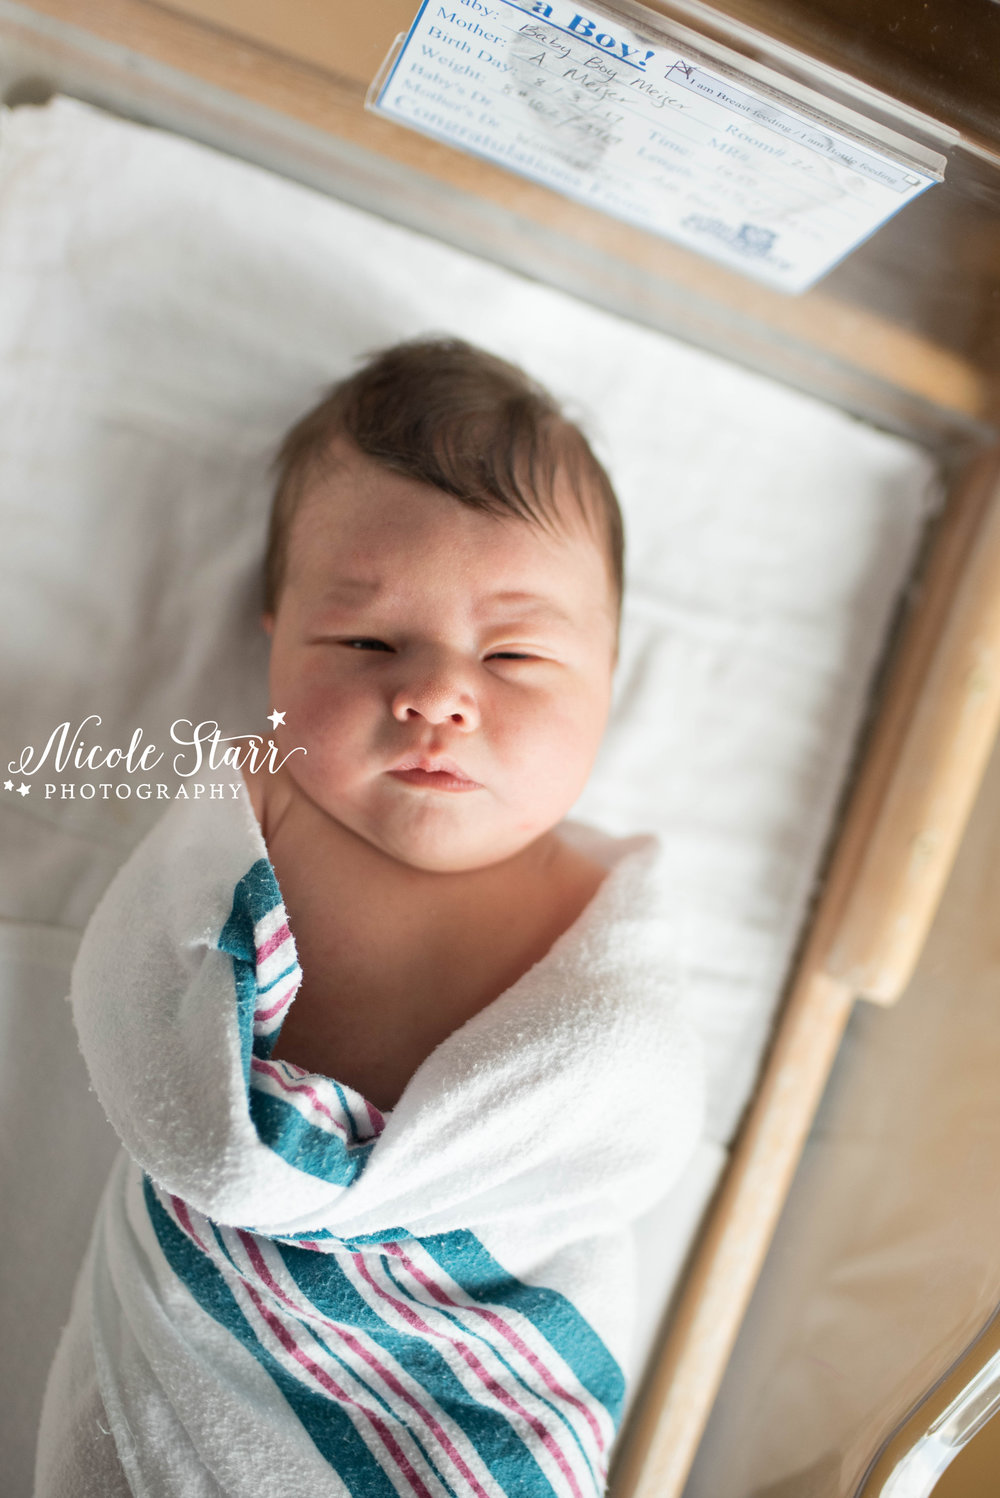 Nicole Starr Photography | Saratoga Springs Newborn Photographer | Boston Newborn Photographer | Upstate NY Newborn Photographer | Newborn Photographer | Glens Falls Hospital